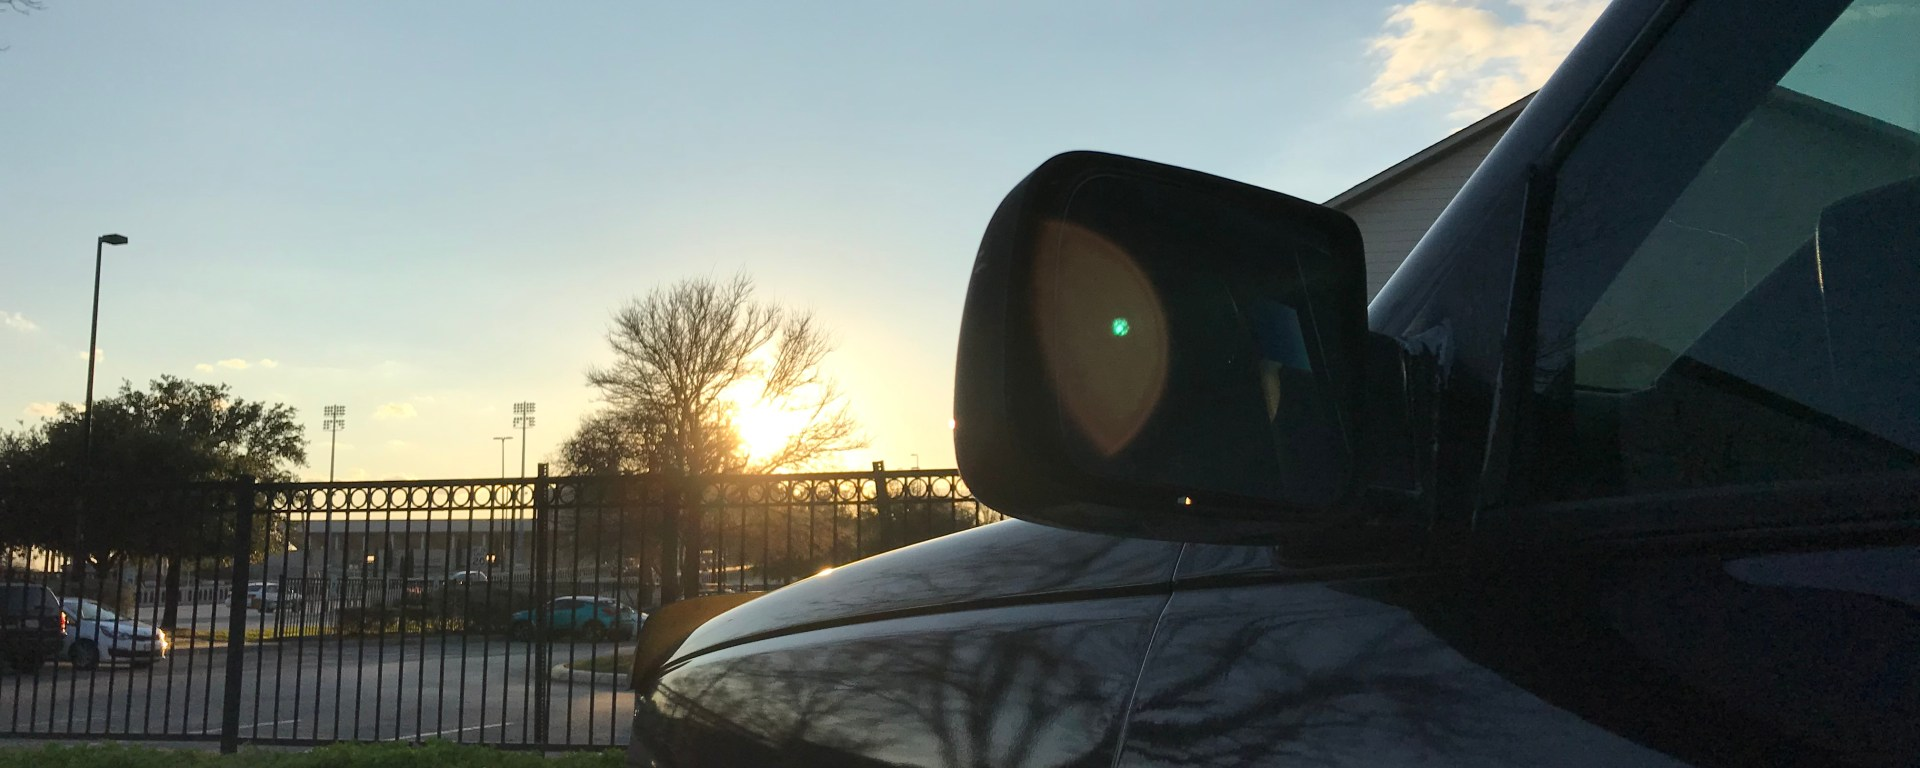 The front of a truck sits off to the right; a building behind it blocks some of the sun's setting rays.